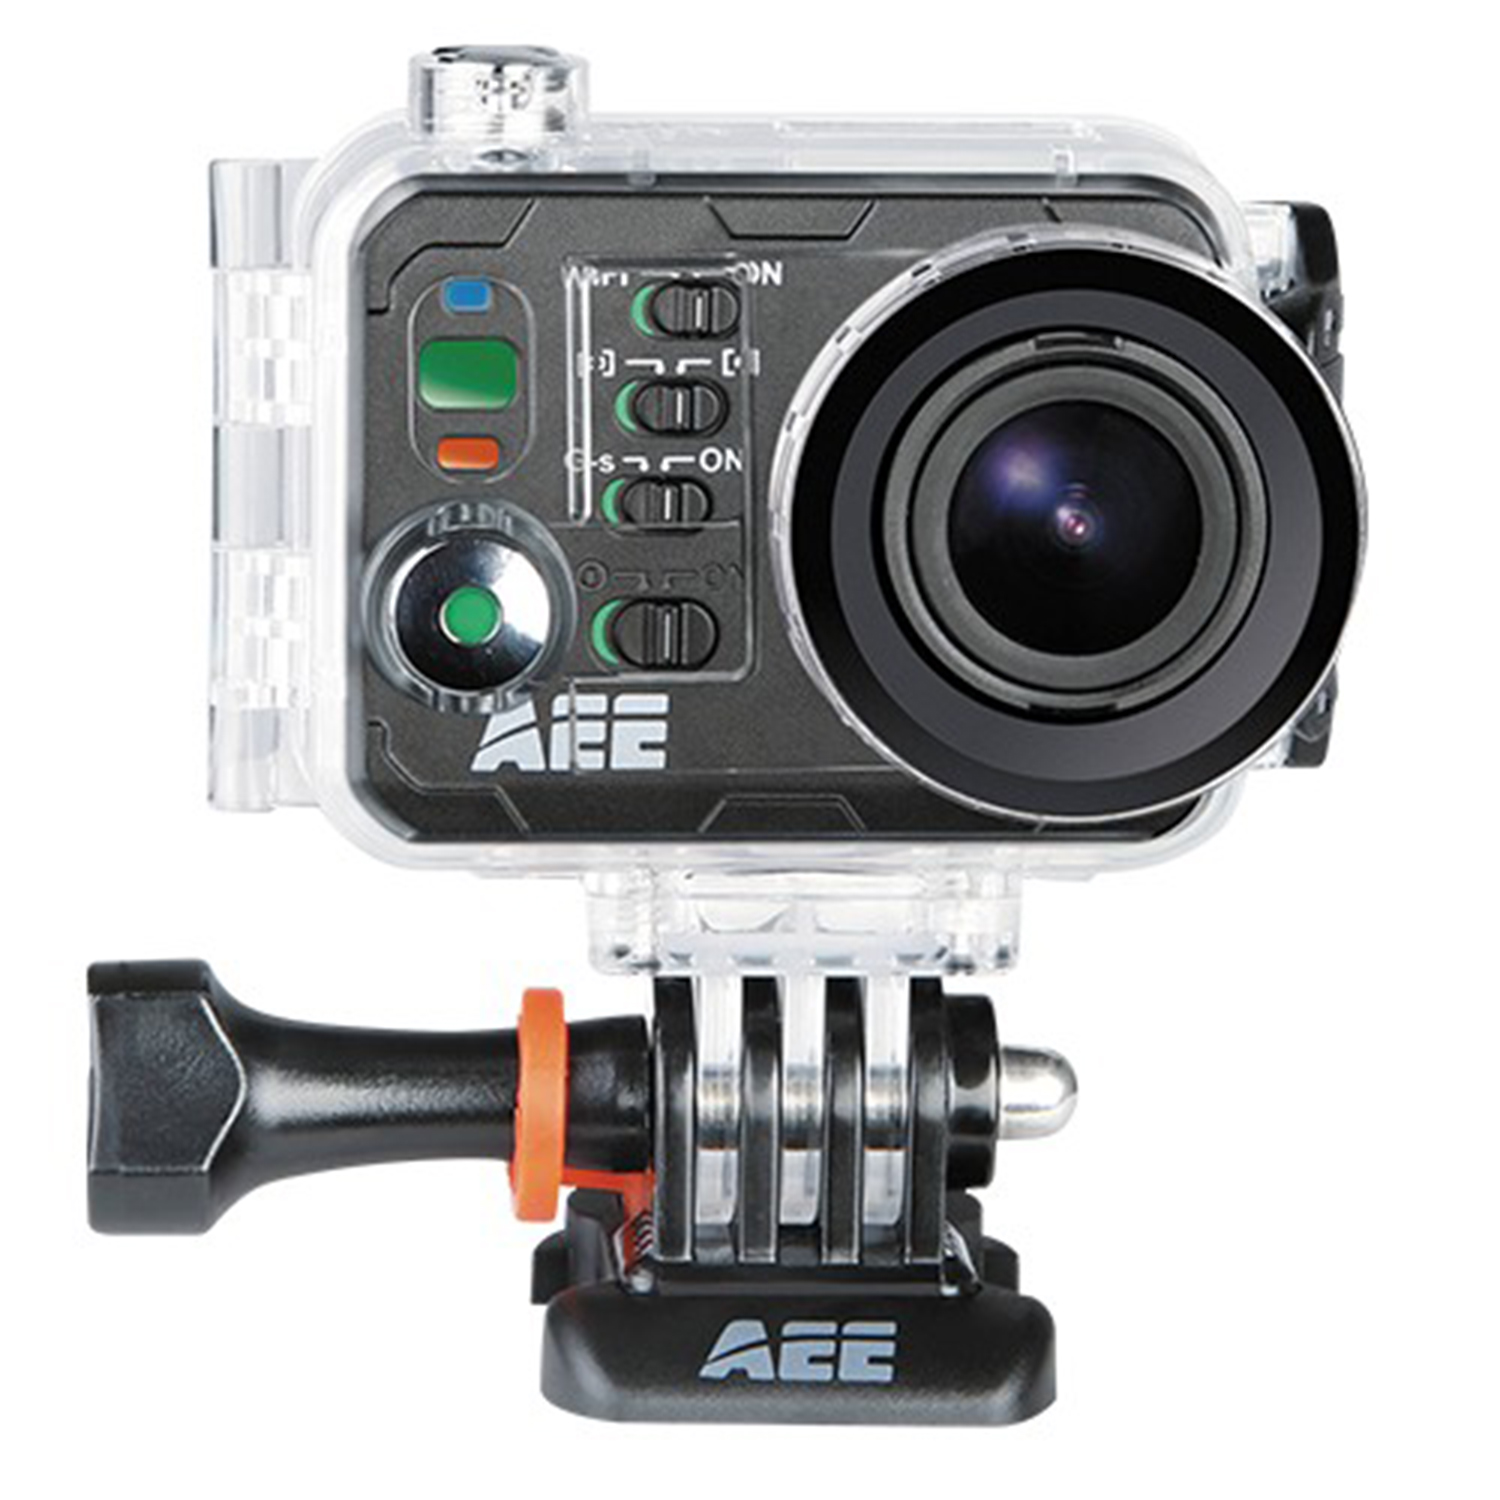 AEE Magicam S71 Ultra HD 4K Sports Action Waterproof Camera with WIFI - Black